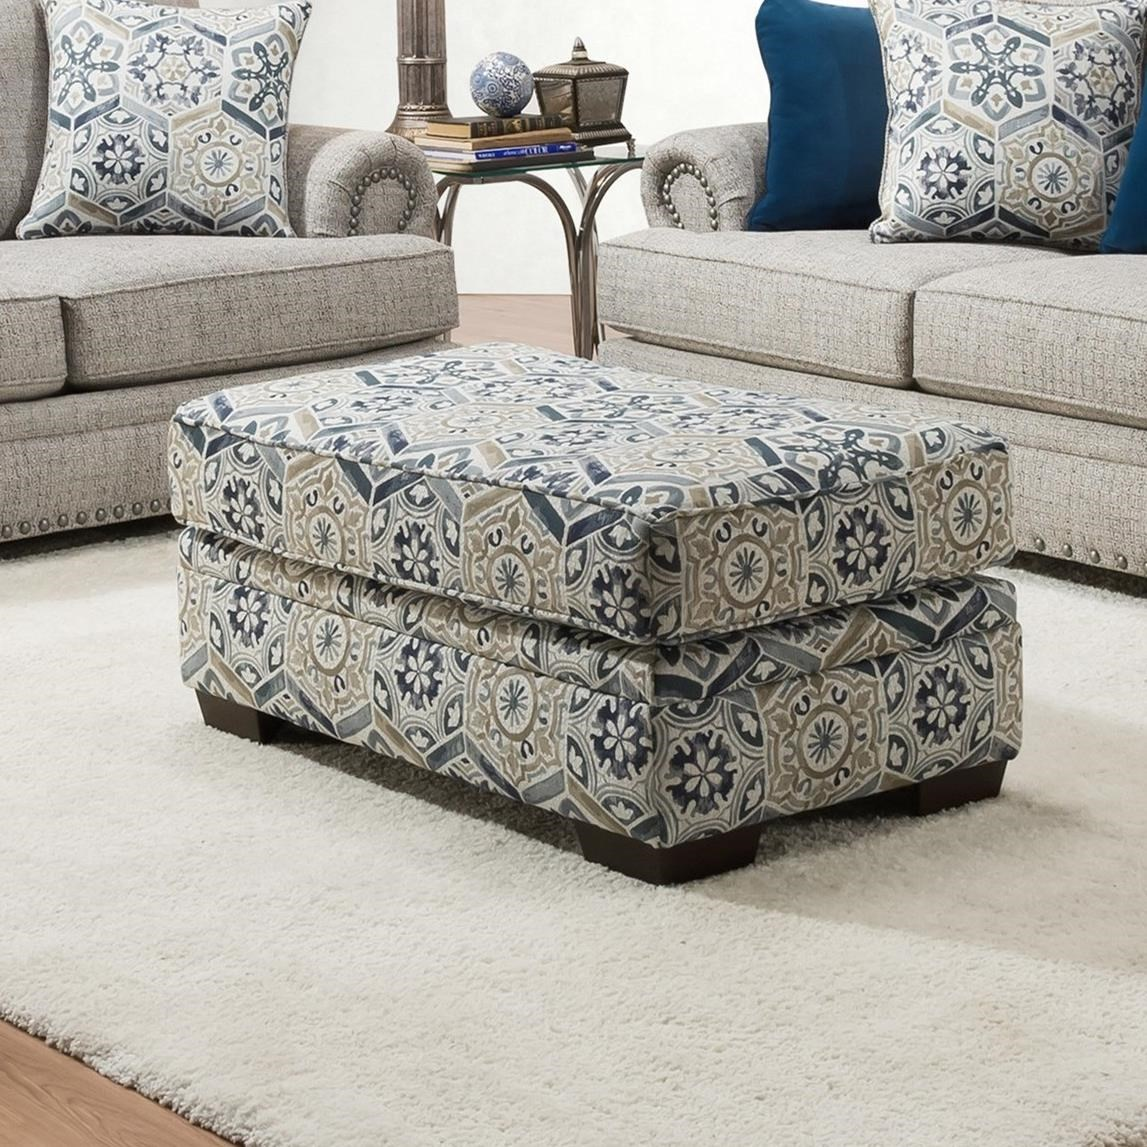 8100 Ottoman by Peak Living at Prime Brothers Furniture